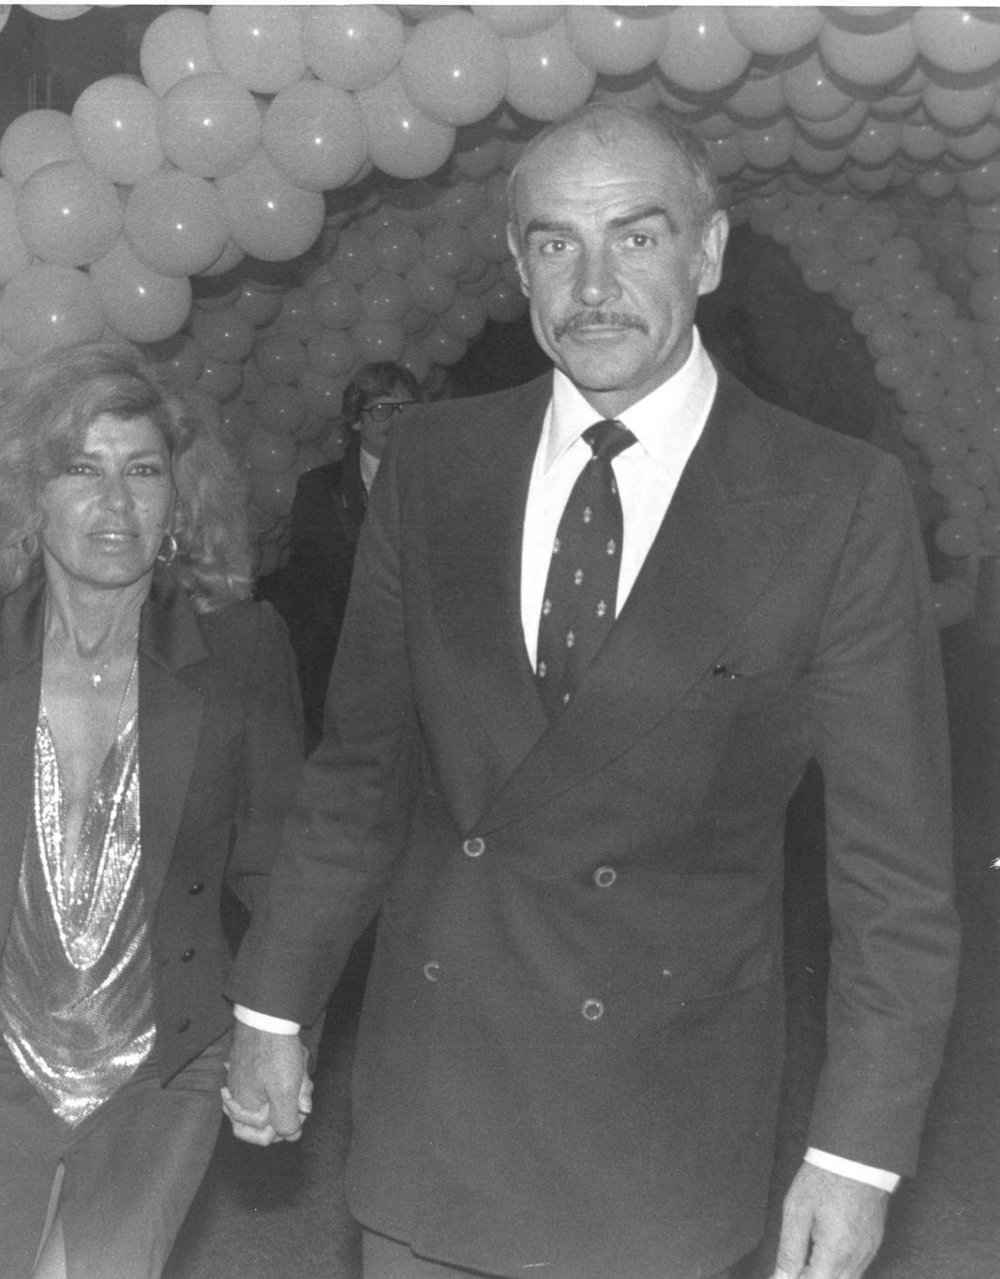 Sir Sean Connery knew how to work a double-breasted suit.